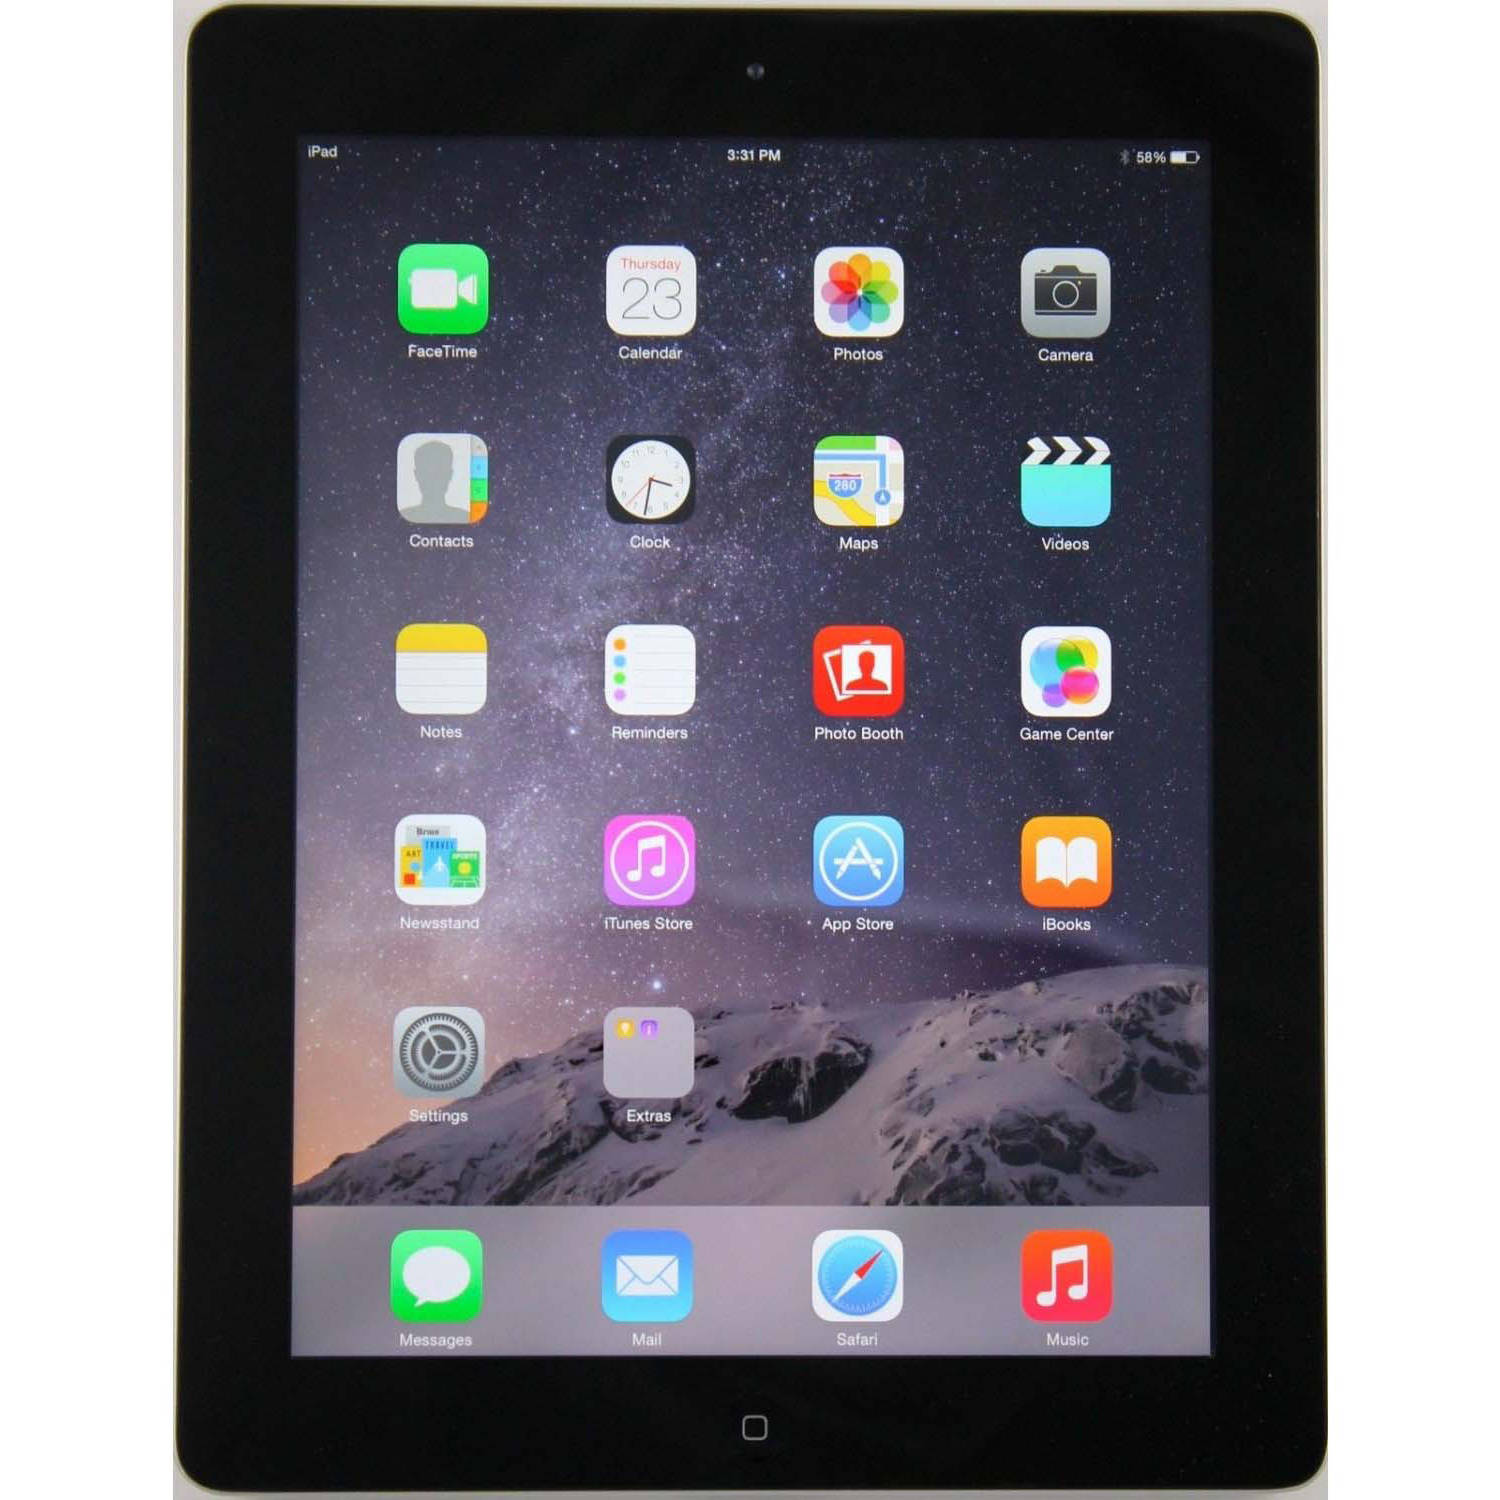 Apple iPad 2 16GB Black Wi-Fi Refurbished